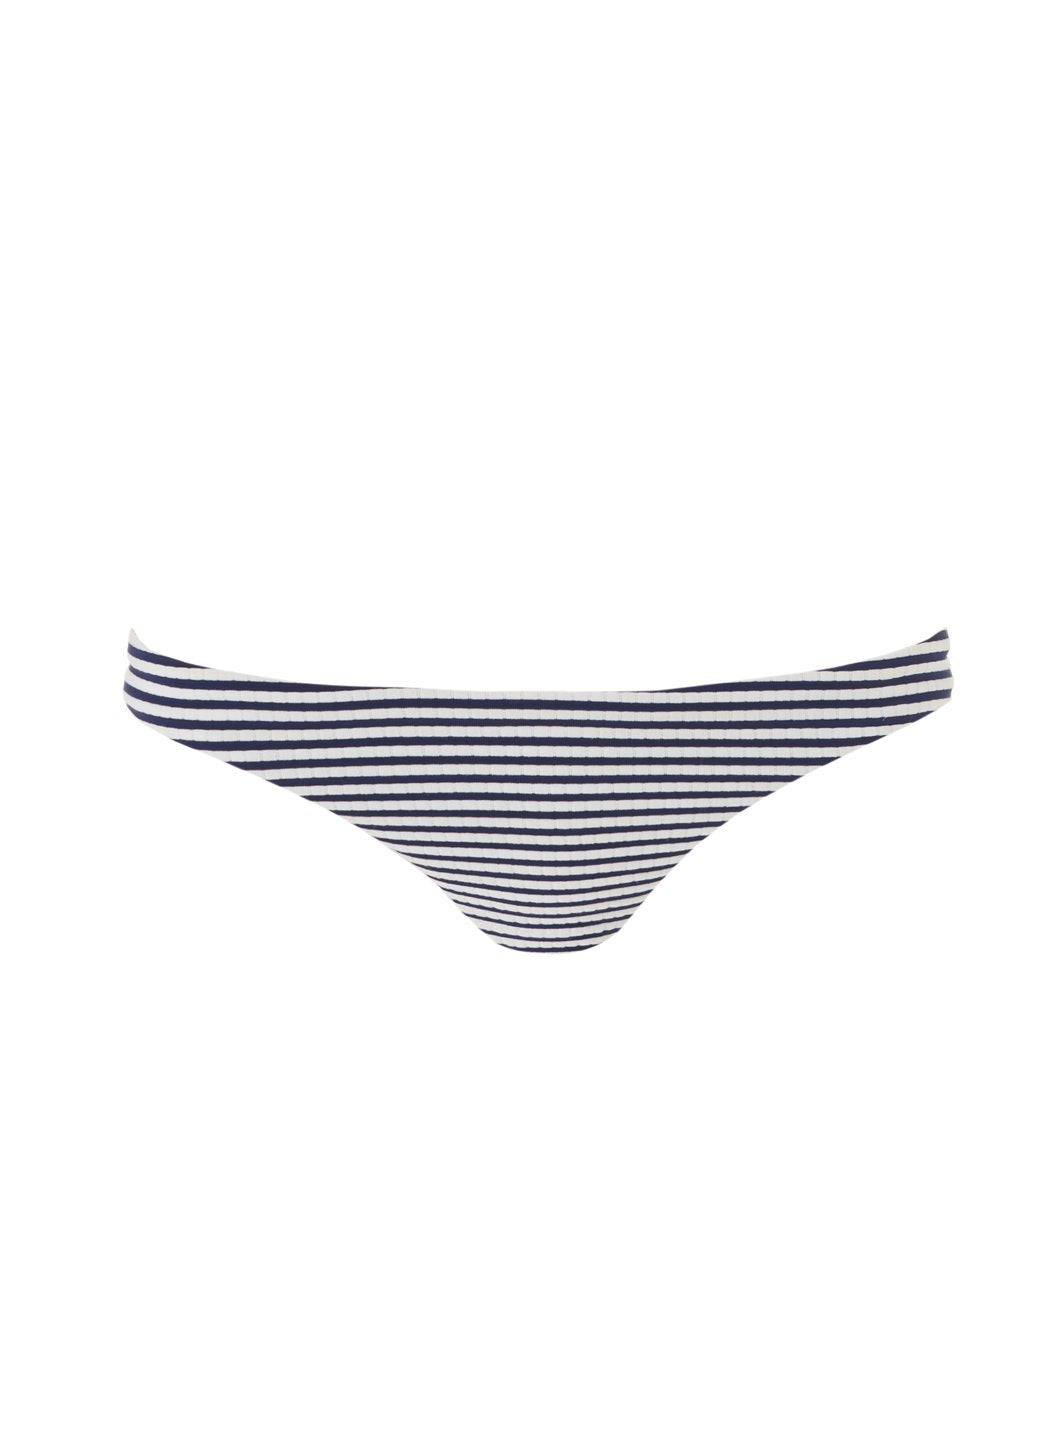 cali-nautical-navy-bikini-bottom - Cut-Out